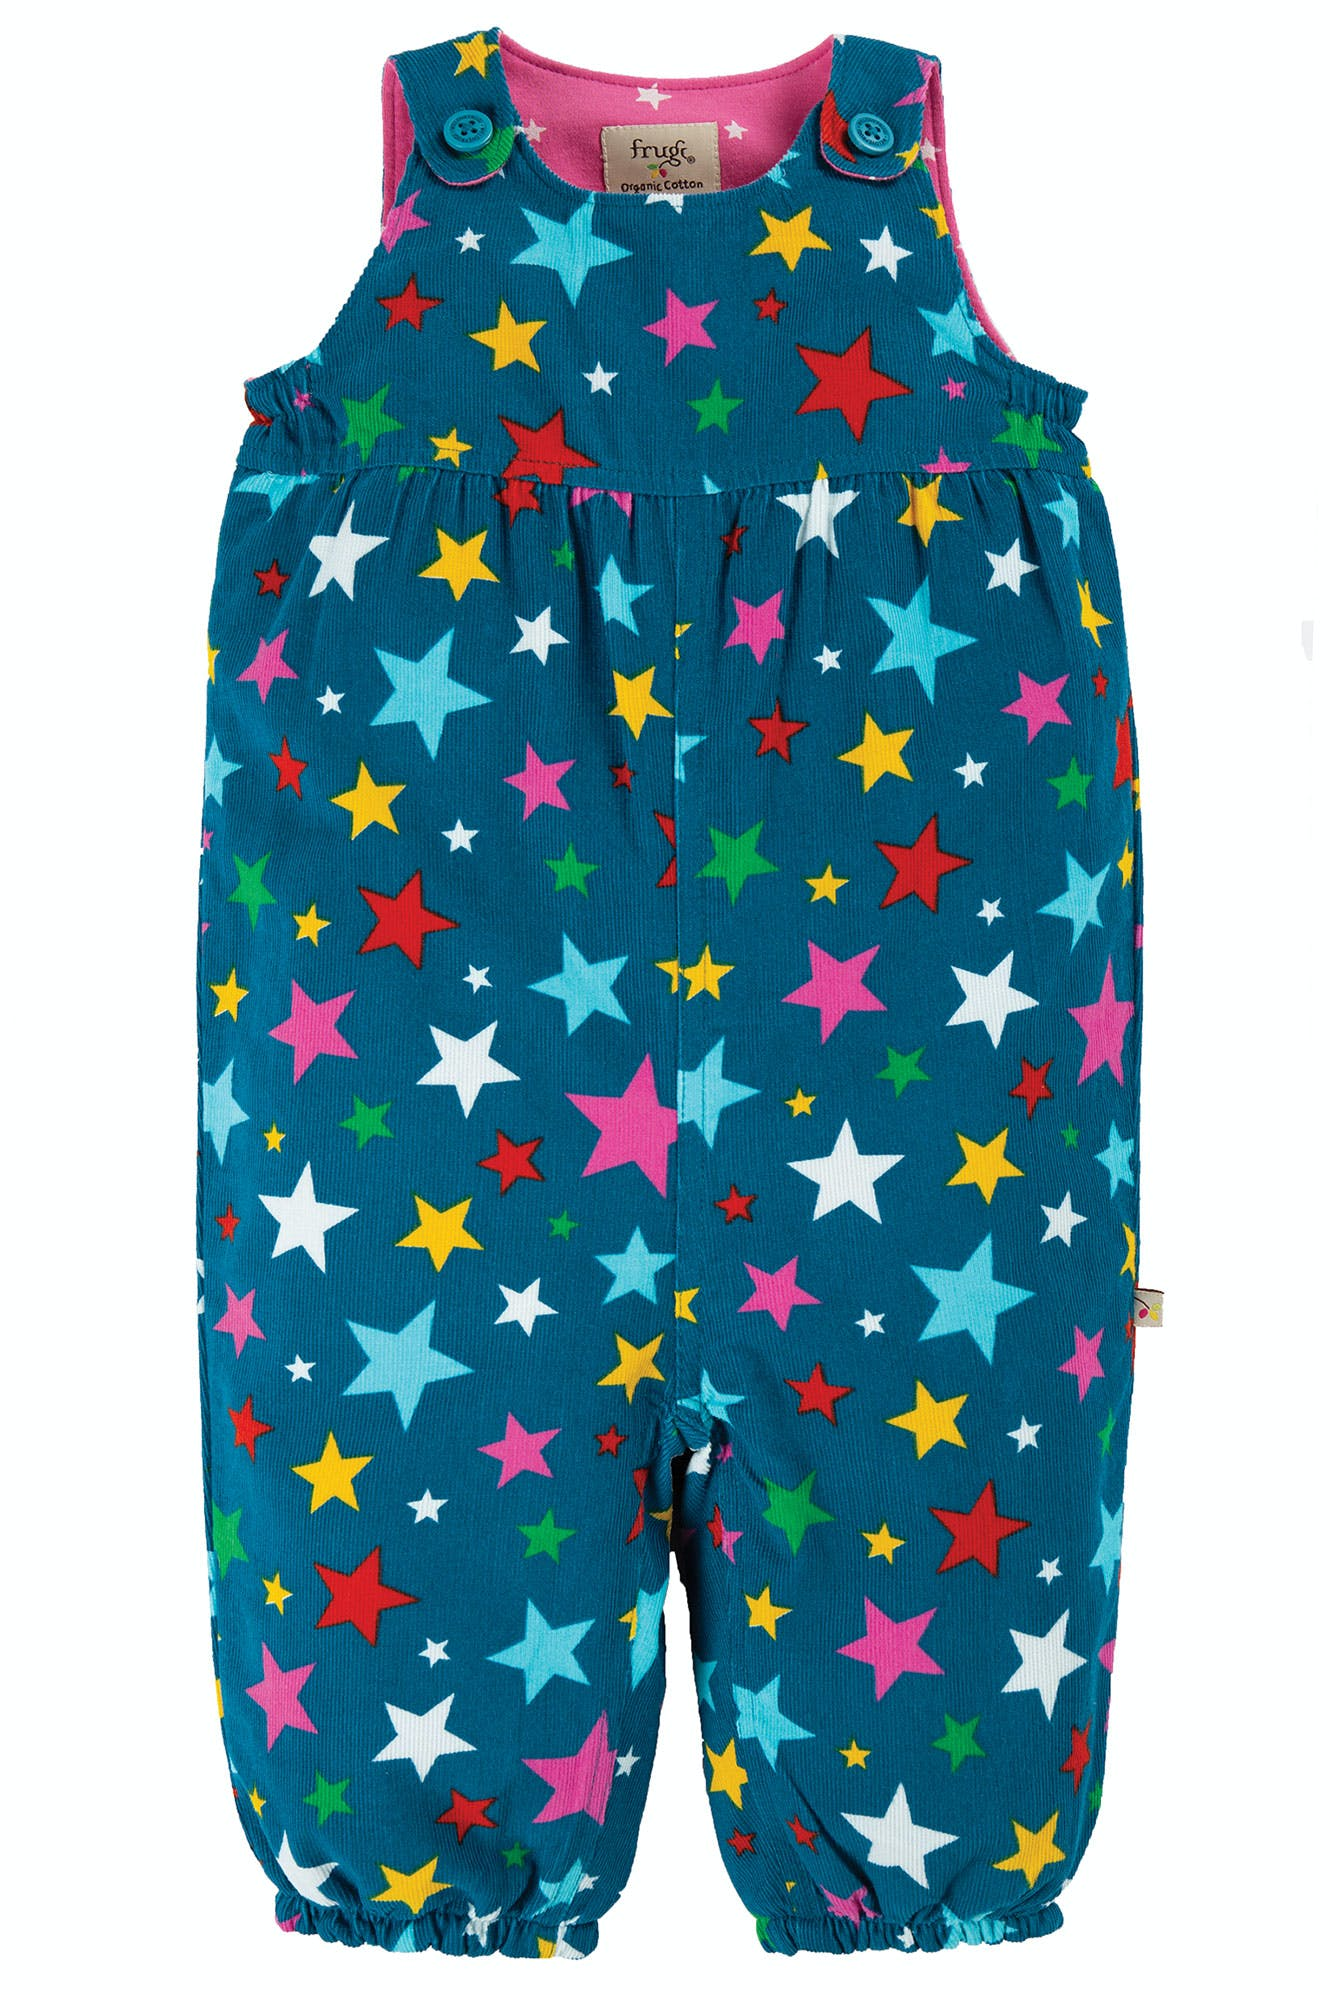 Frugi Willow Cord Dungaree-Rainbow Stars (was £35)